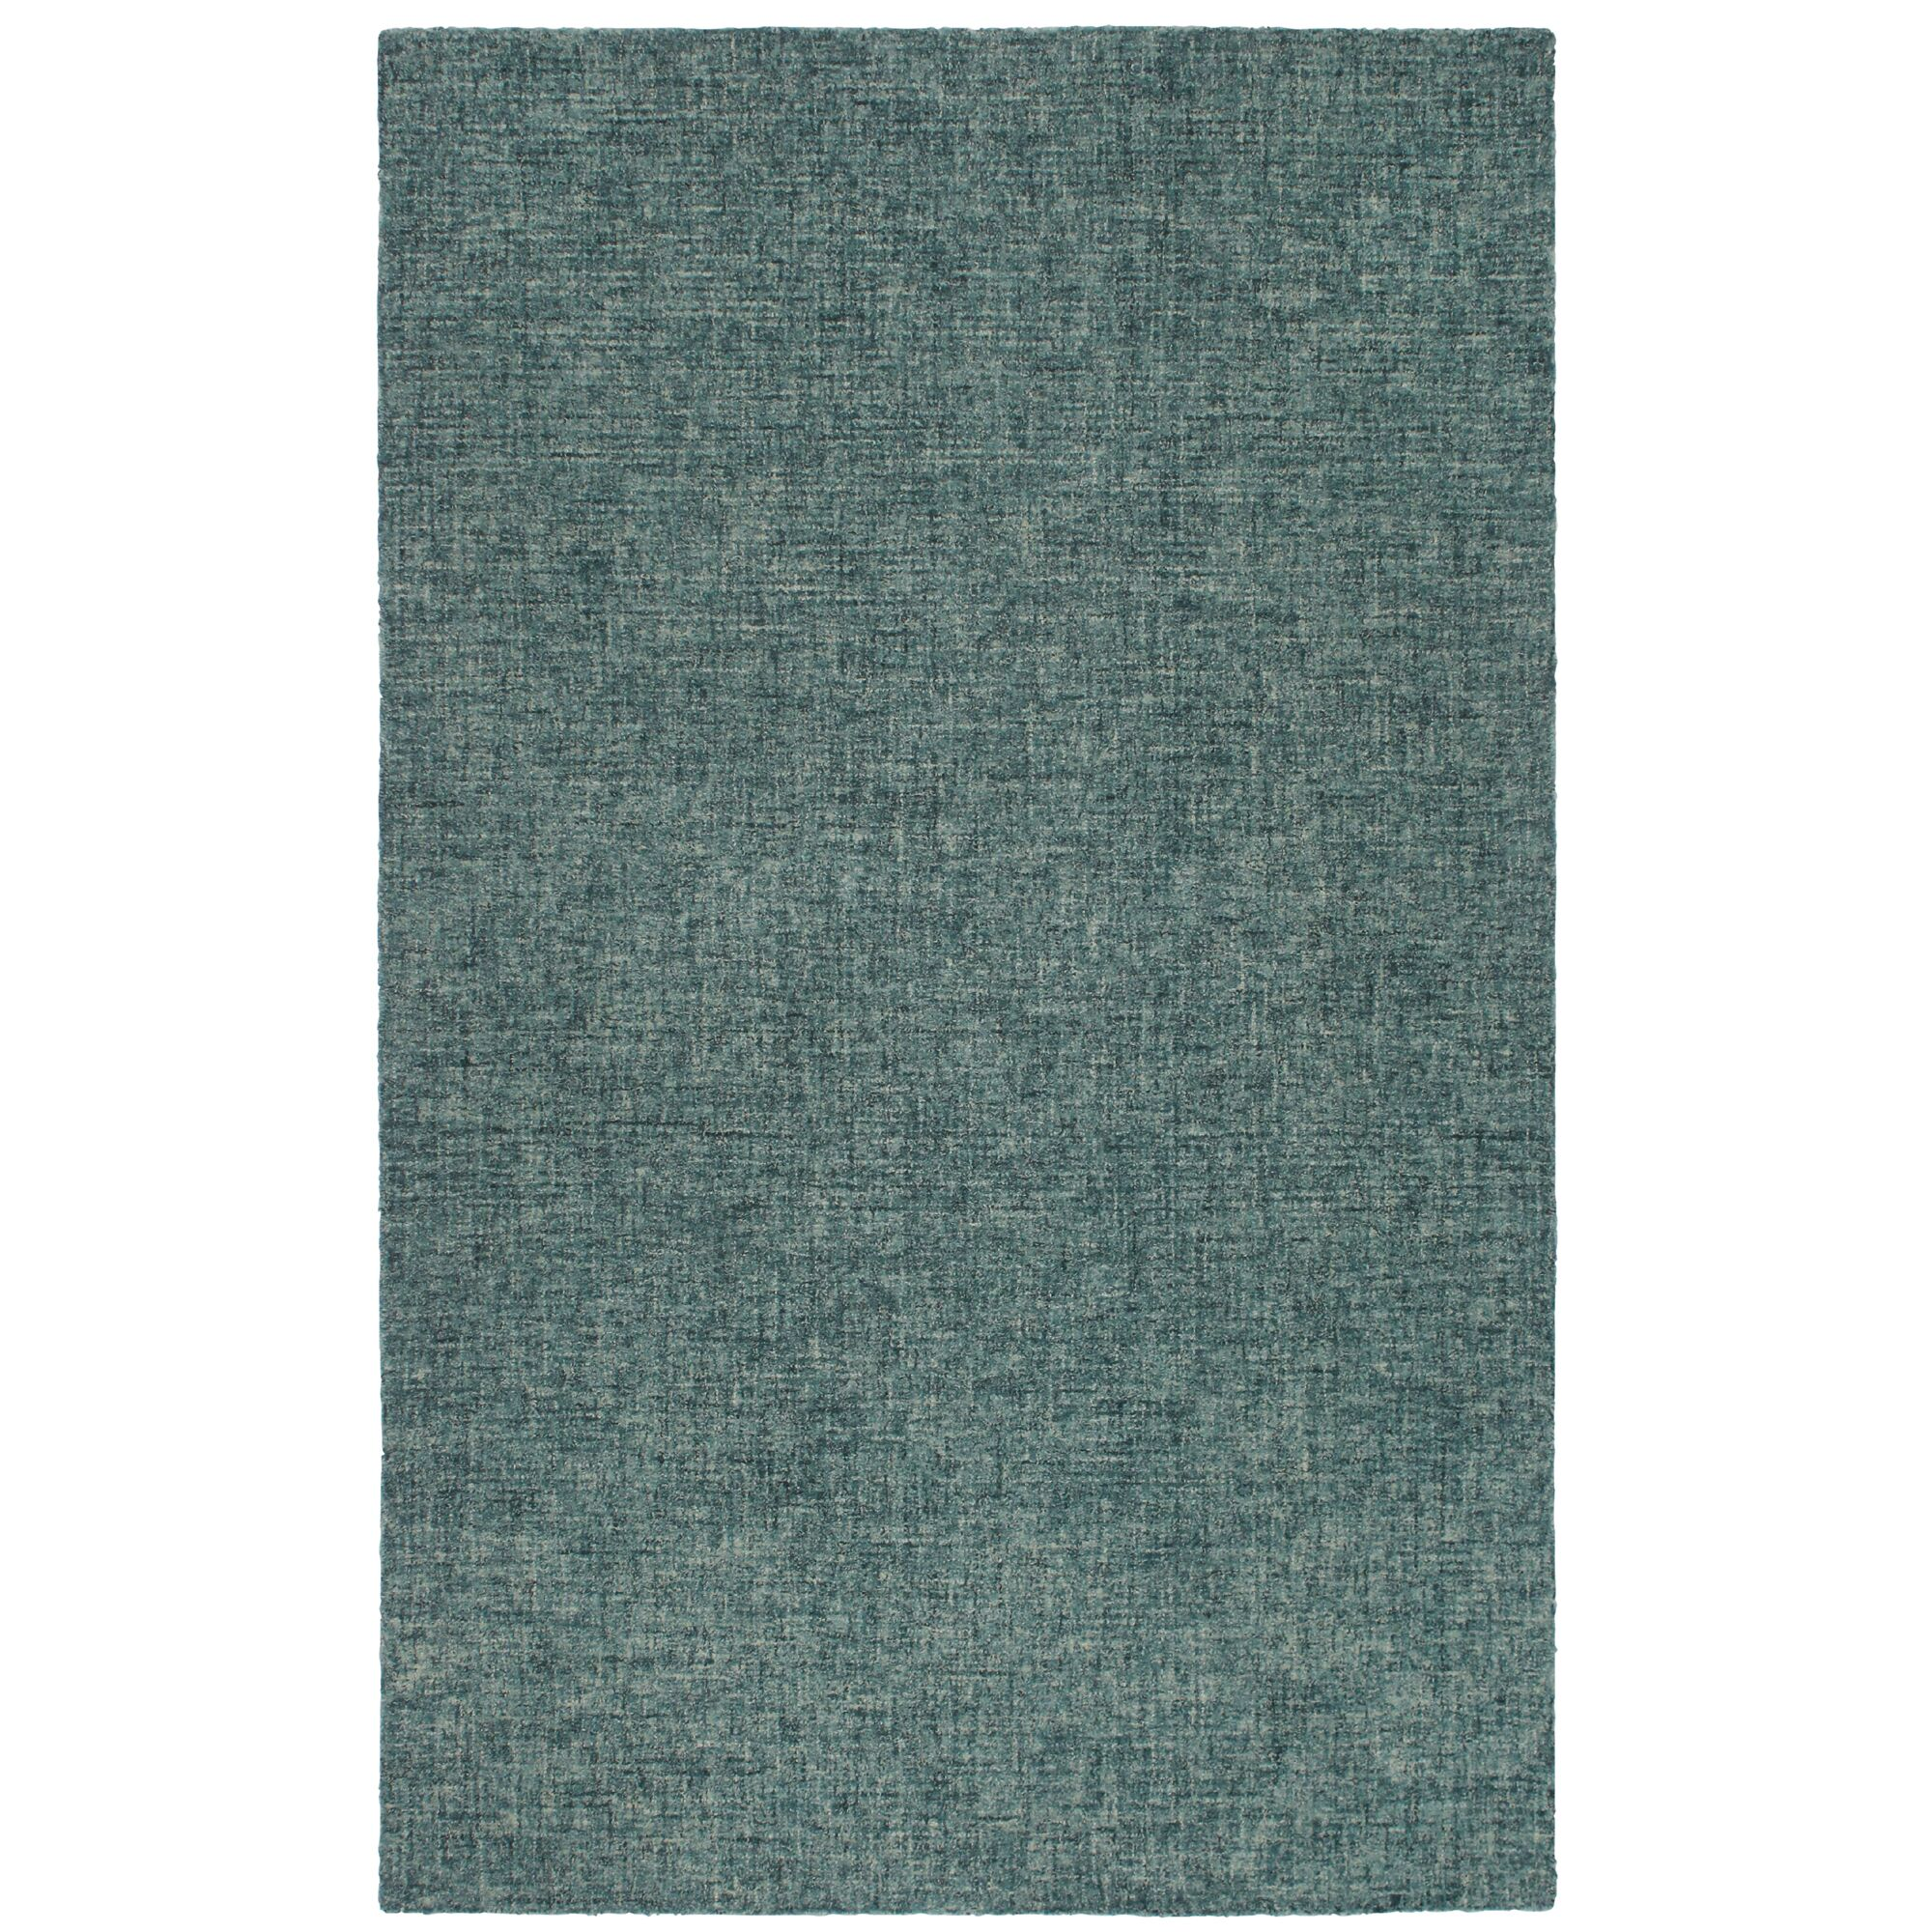 Finkelstein Hand-Tufted Wool Green Area Rug Rug Size: Square 8'